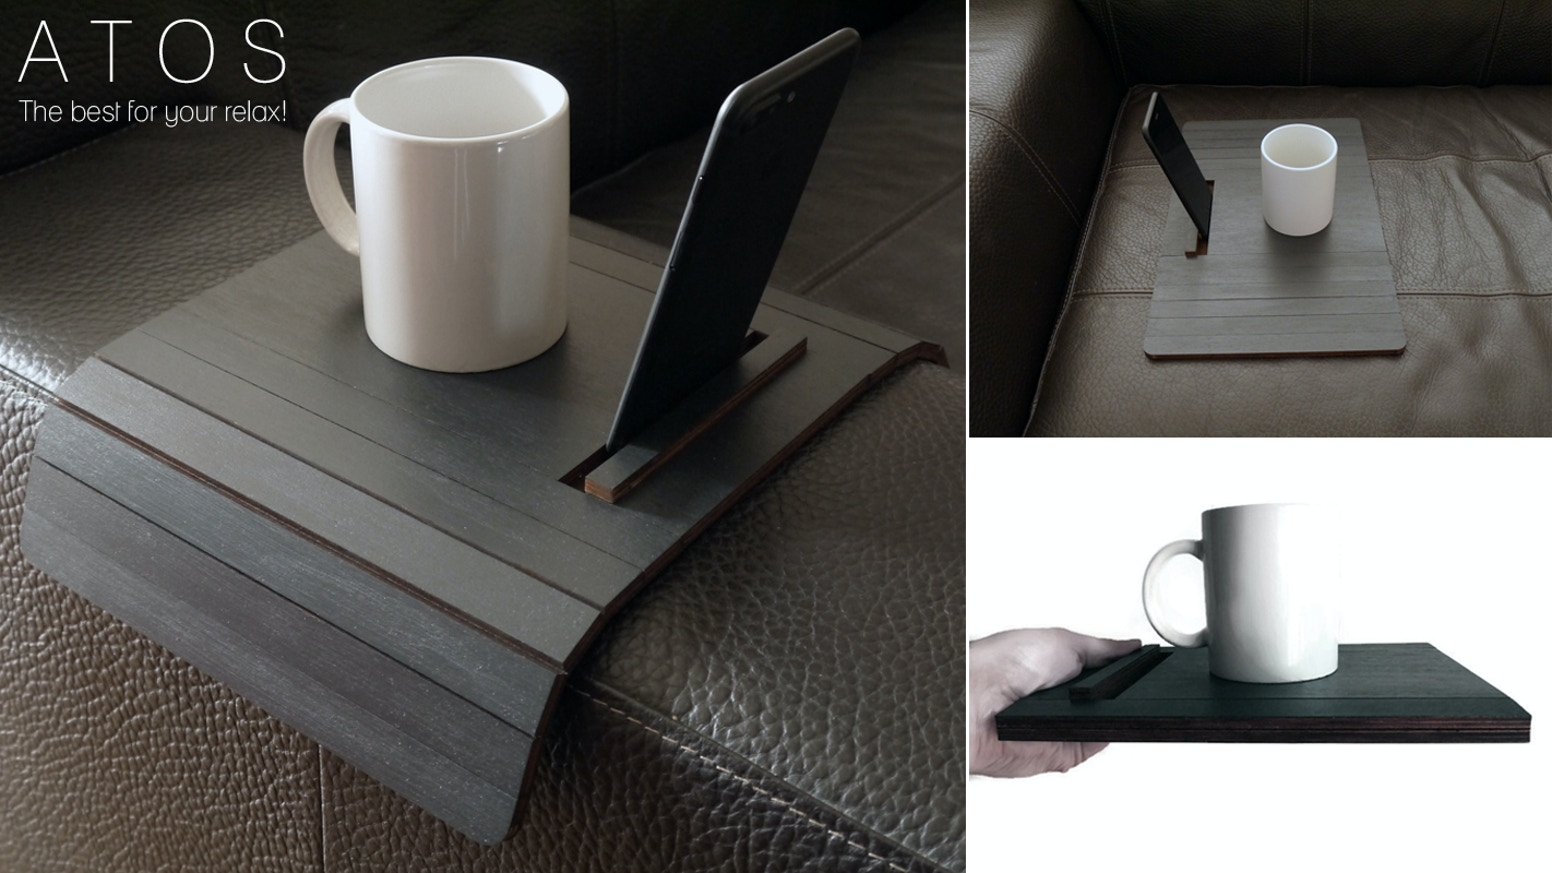 Atos Sofa Arm Table With Phone And Tablet Stand By Alessio Rocchi